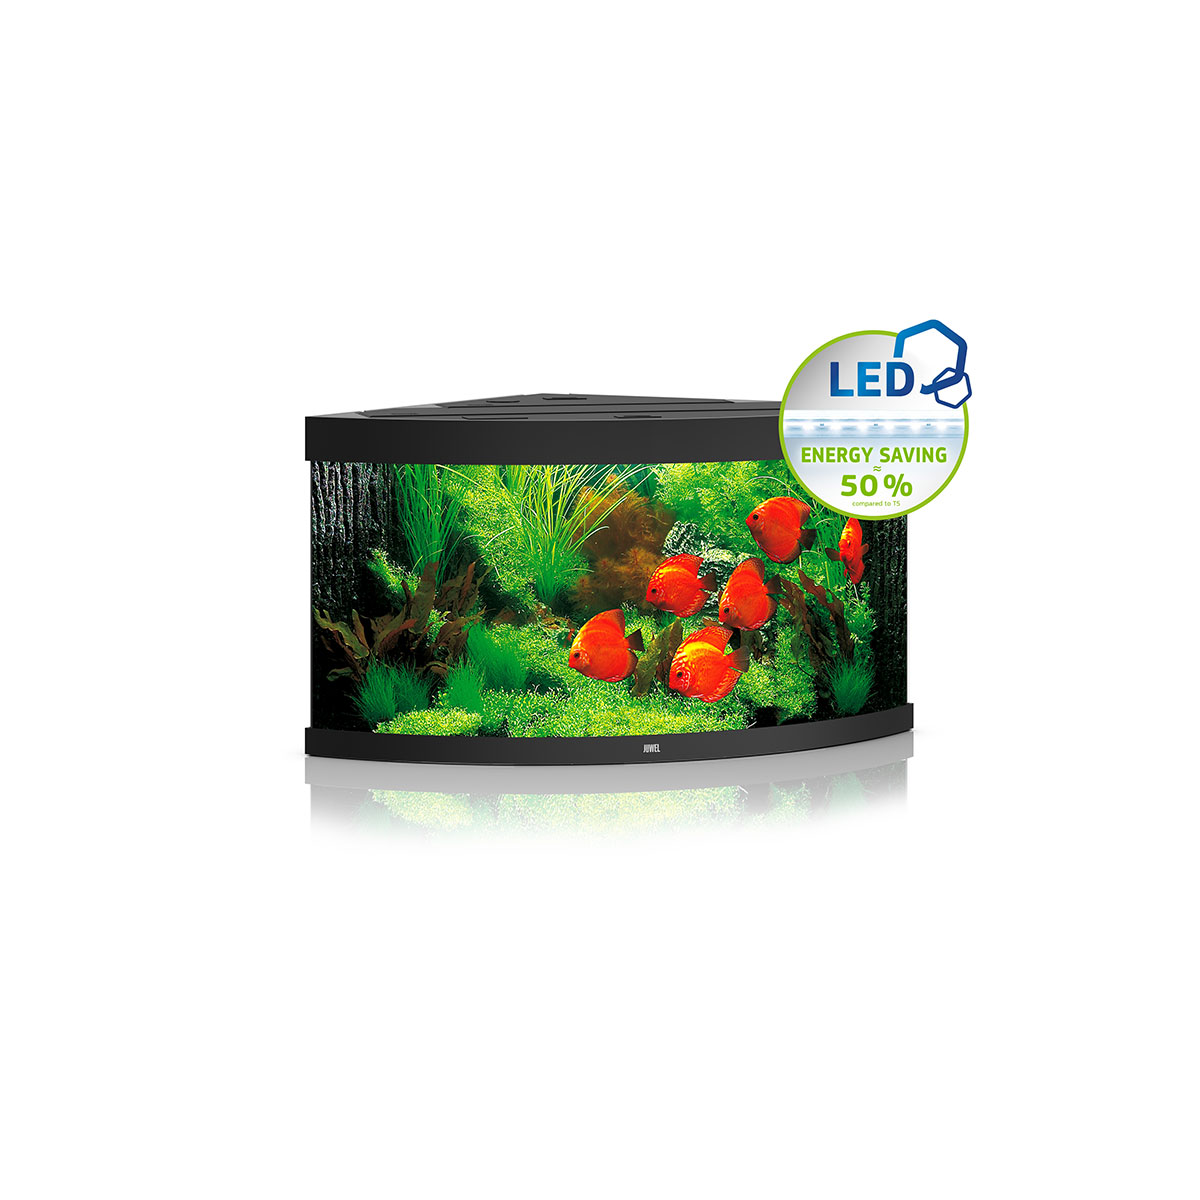 juwel komplett aquarium trigon 350 led ohne unterschrank. Black Bedroom Furniture Sets. Home Design Ideas